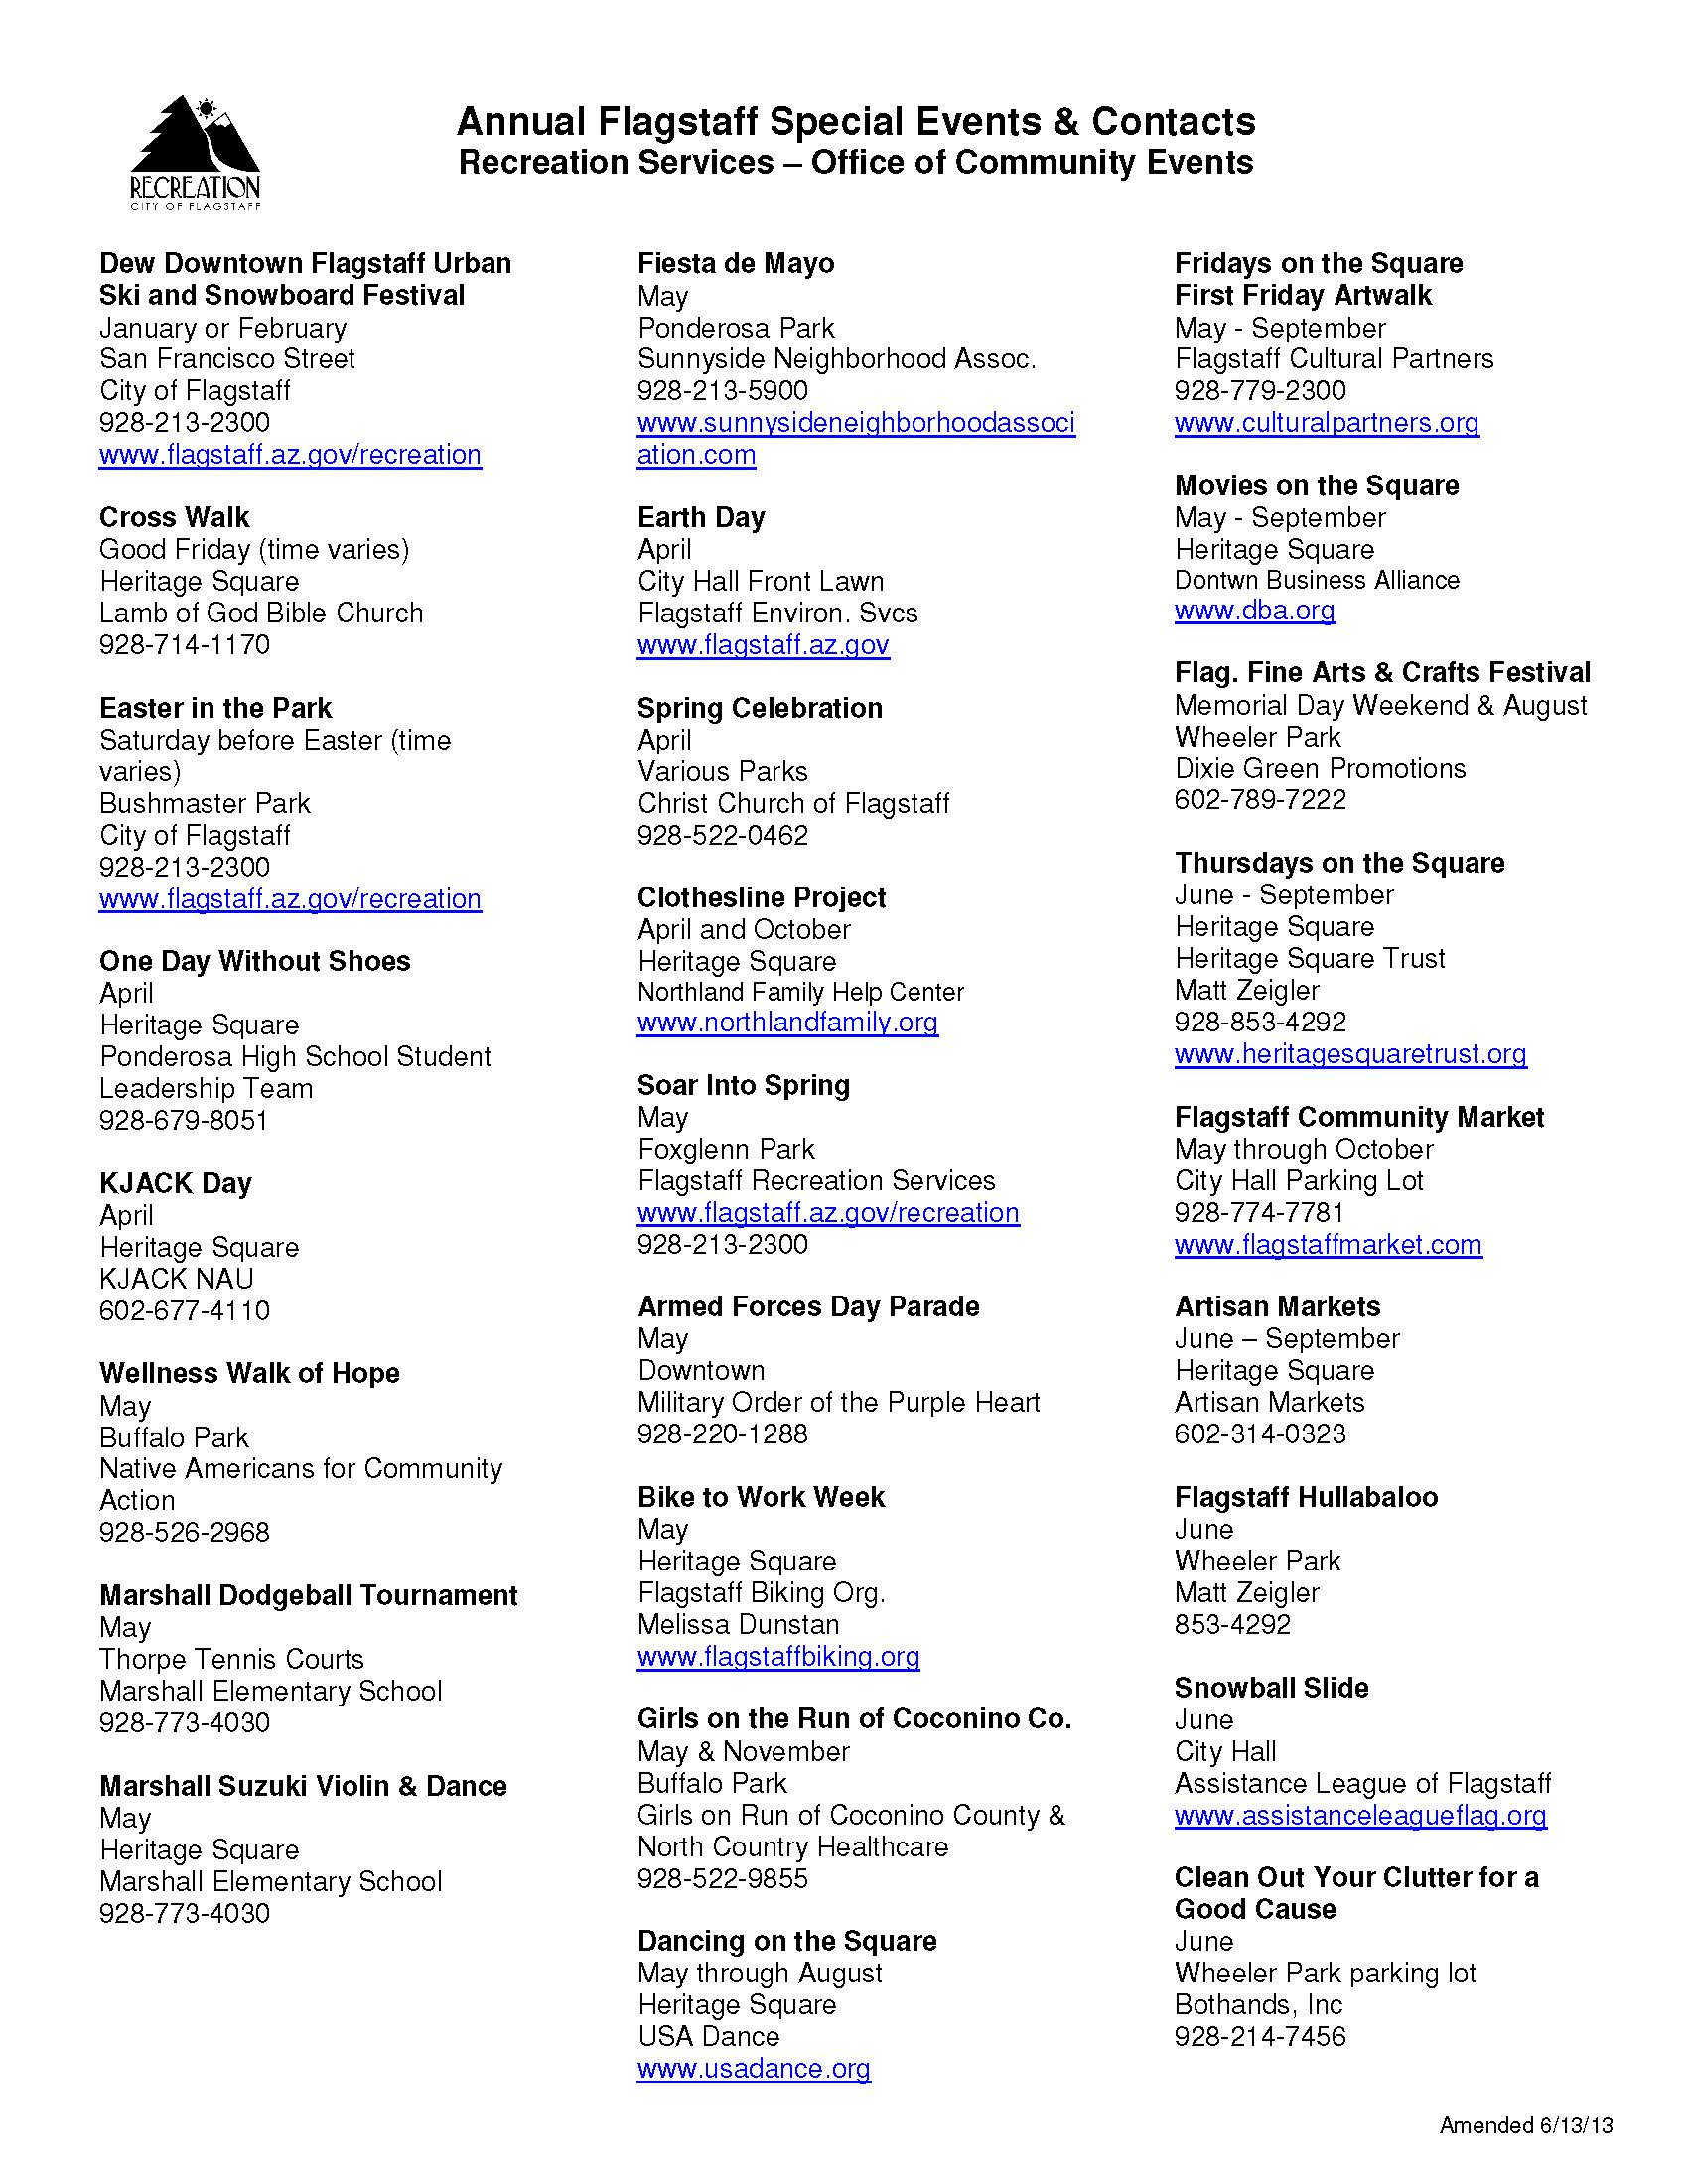 List of Yearly Events 061413_Page_1.jpg